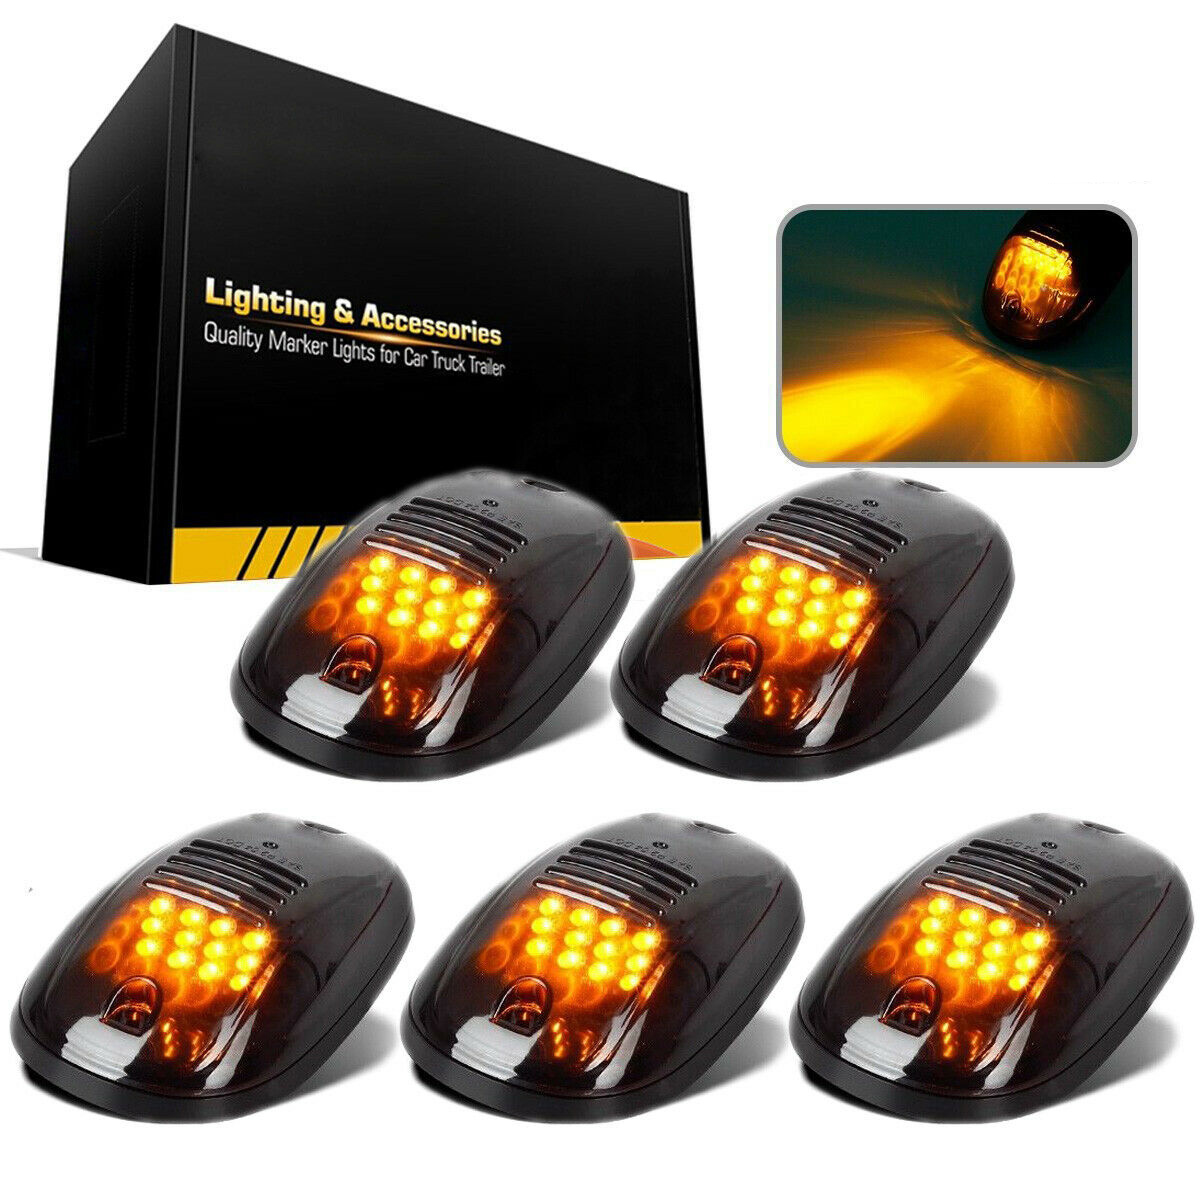 5Pcs Smoked Cab Roof Marker 12-LED Running Clearance Lights Suitable Fit For Dodge Ram Truck Light System